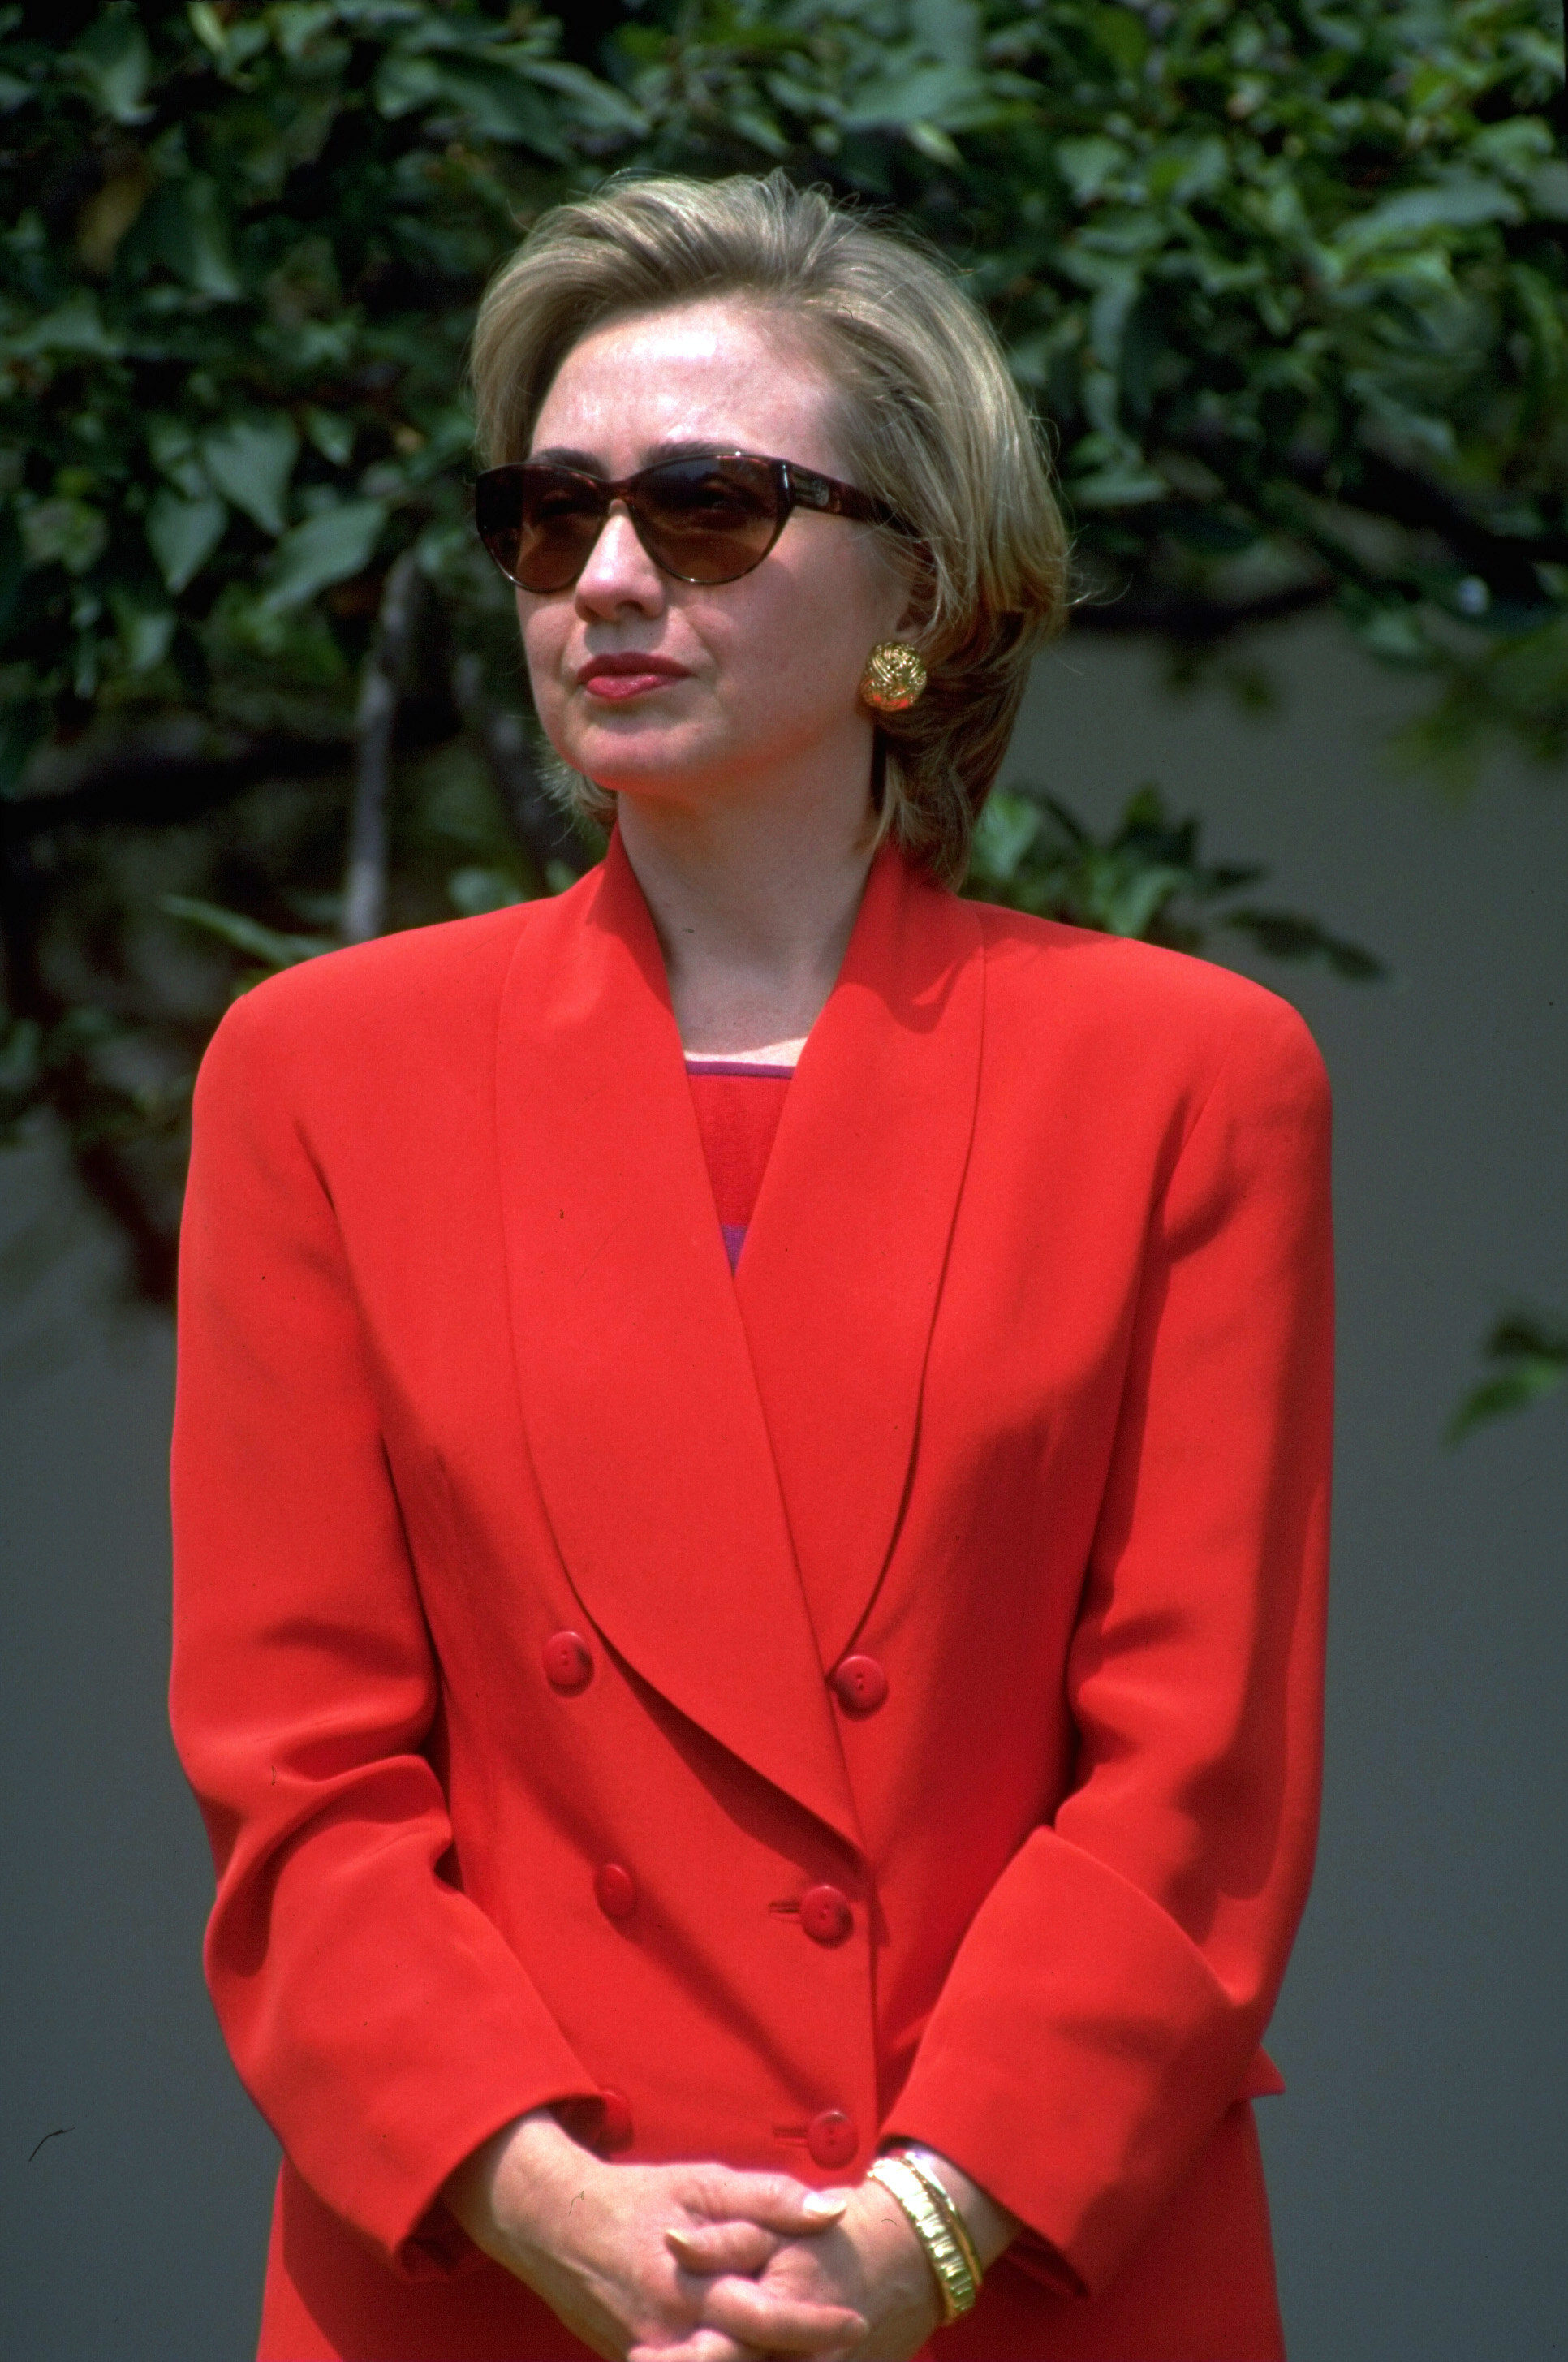 First Lady Hillary Rodham Clinton in the White House Rose Garden during a meeting with the League of Women Voters in Washington on June 7, 1993.